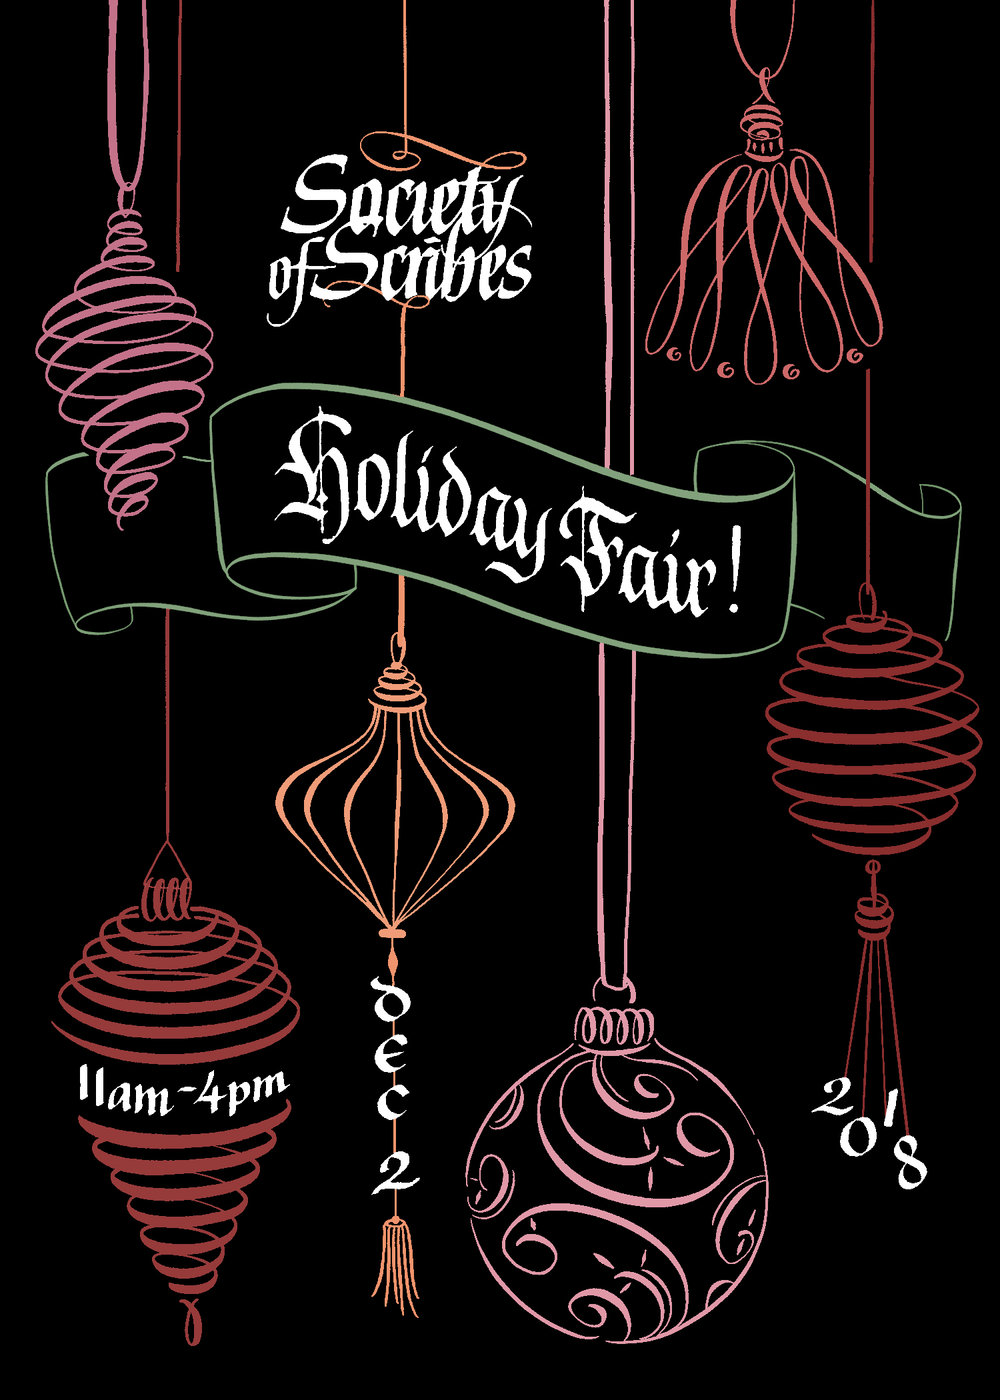 NYC Society of Scribes Holiday Fair postcard design | by www.chavelli.com